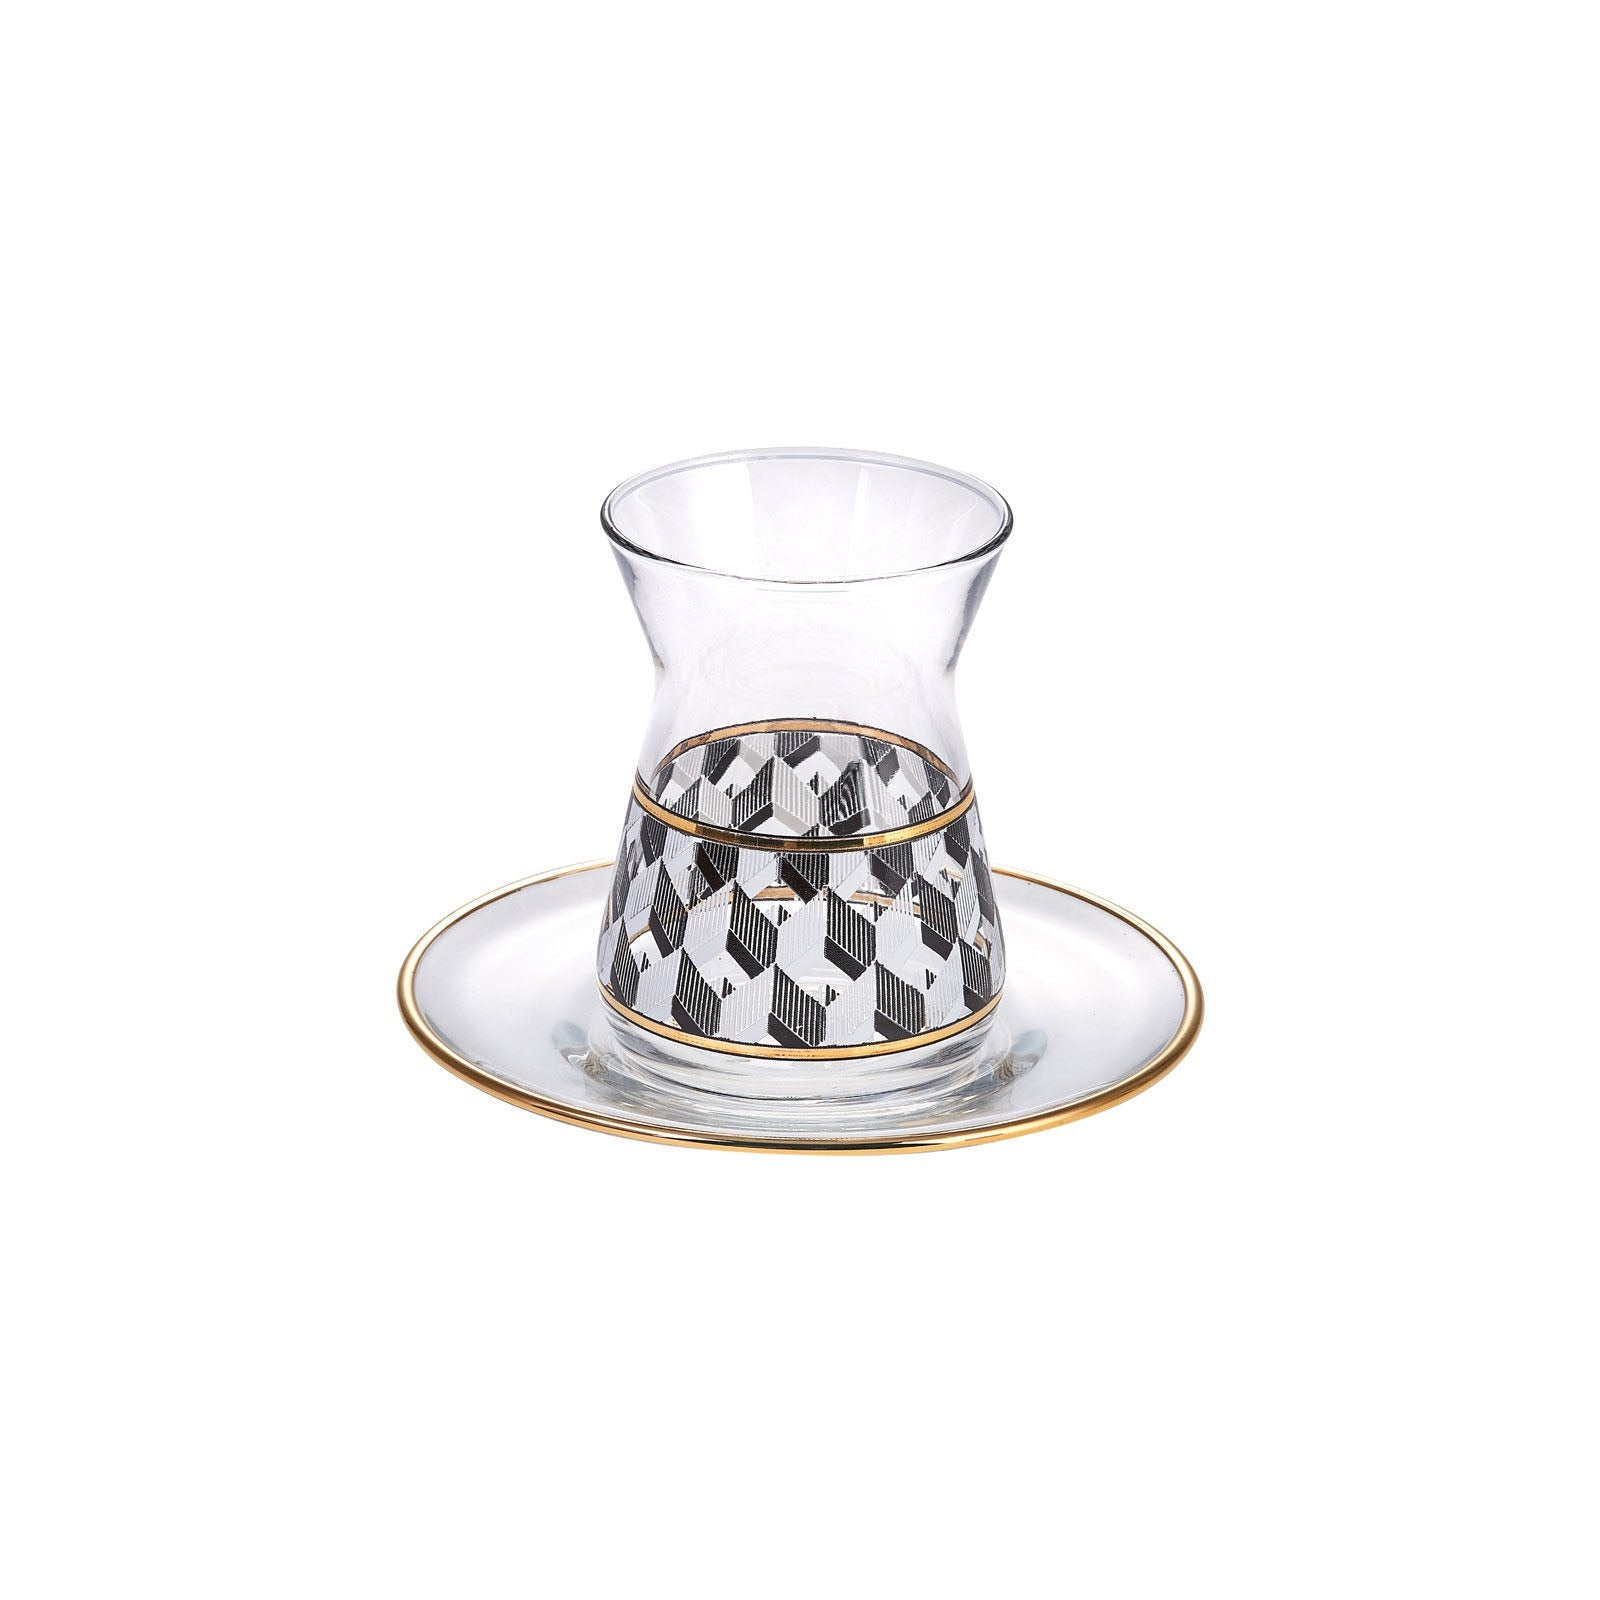 Karaca Alfa 12 Piece Tea Set 153.03.06.1338 -  طقم شاي كاراجا الفا 12 قطعة - Shop Online Furniture and Home Decor Store in Dubai, UAE at ebarza